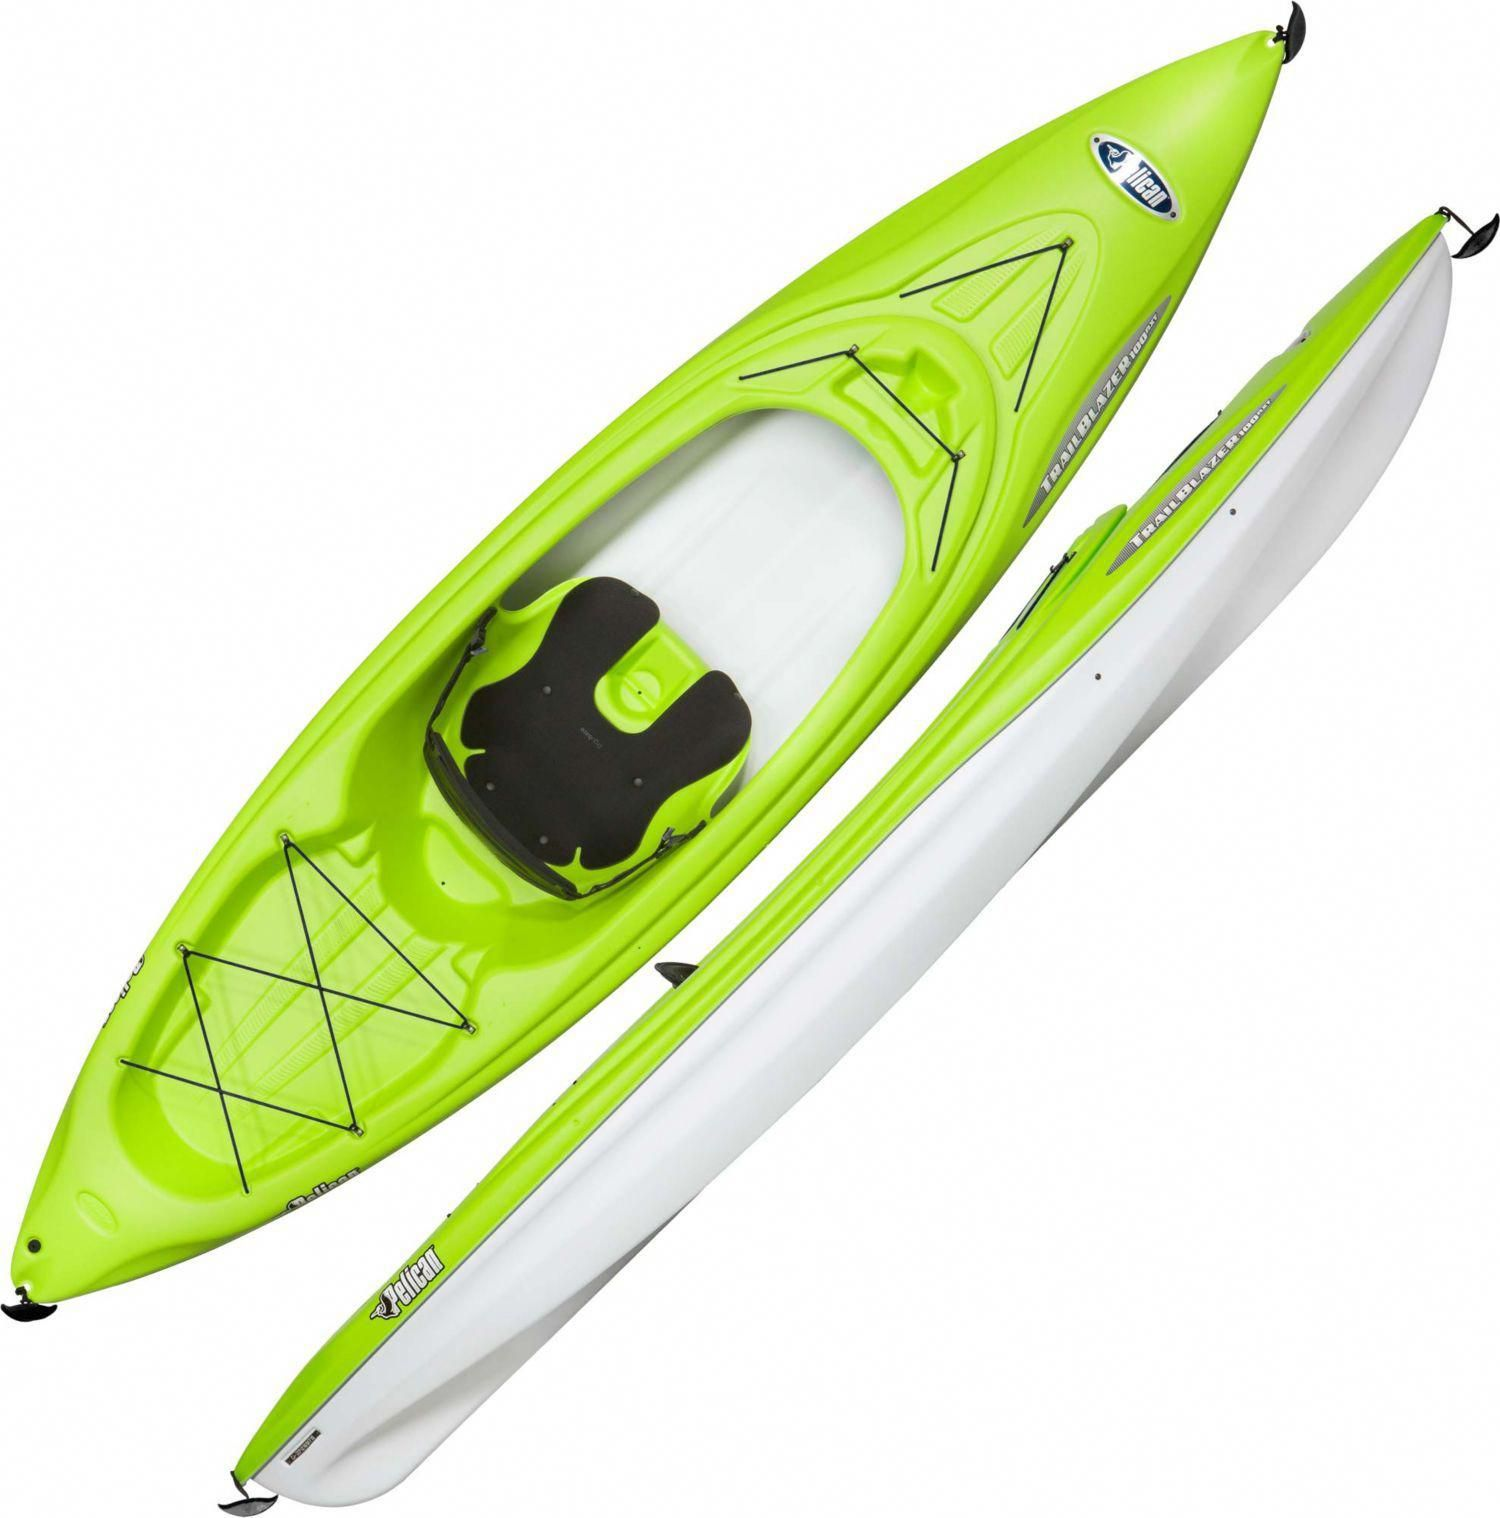 Pelican Trailblazer 100 Nxt Kayak Field Stream